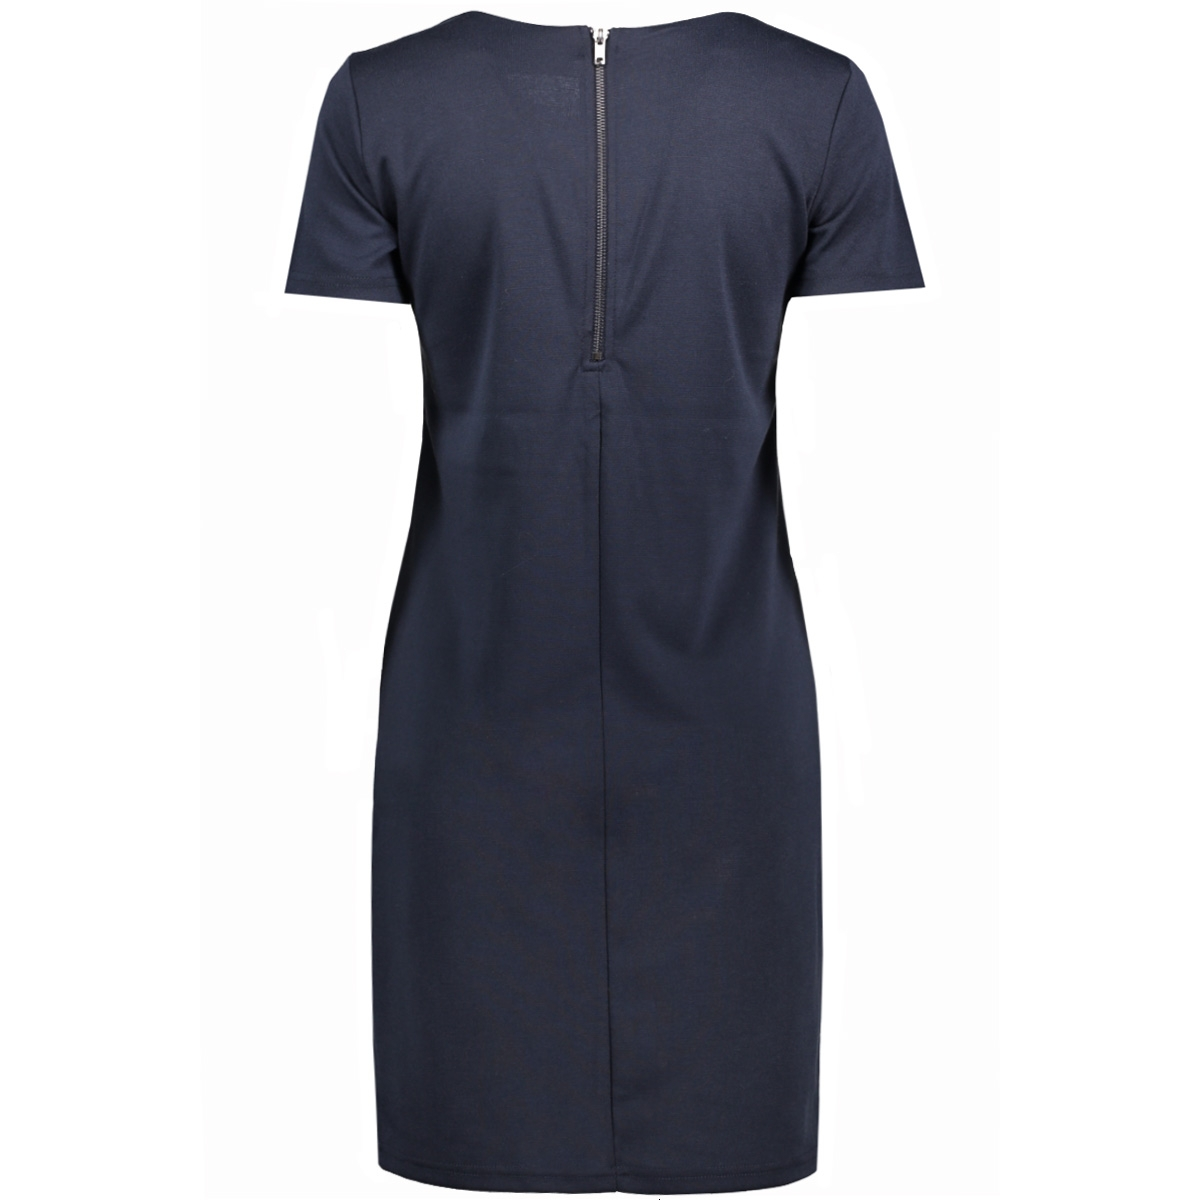 vitinny new s/s dress - noos 14032604 vila jurk total eclipse